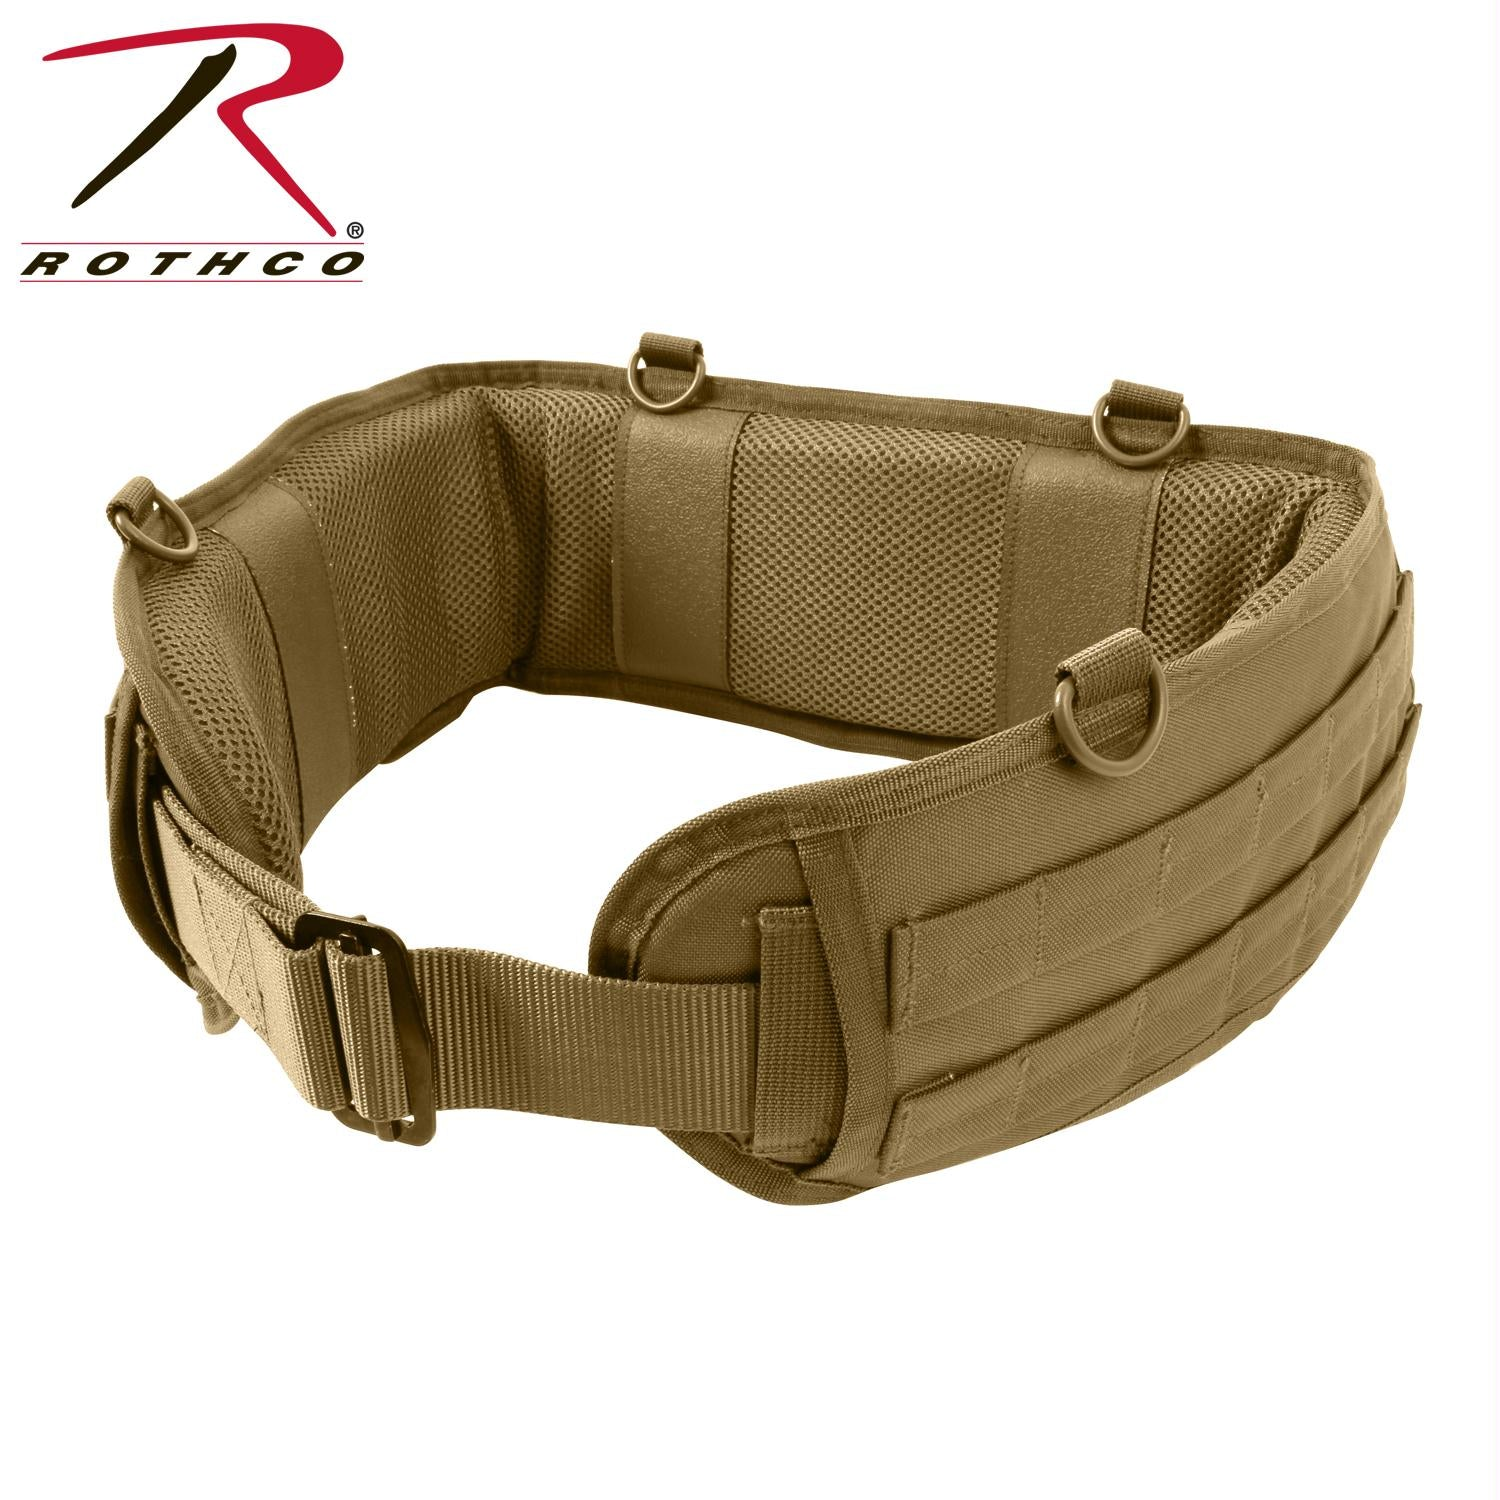 Rothco Tactical Battle Belt - Coyote Brown / M